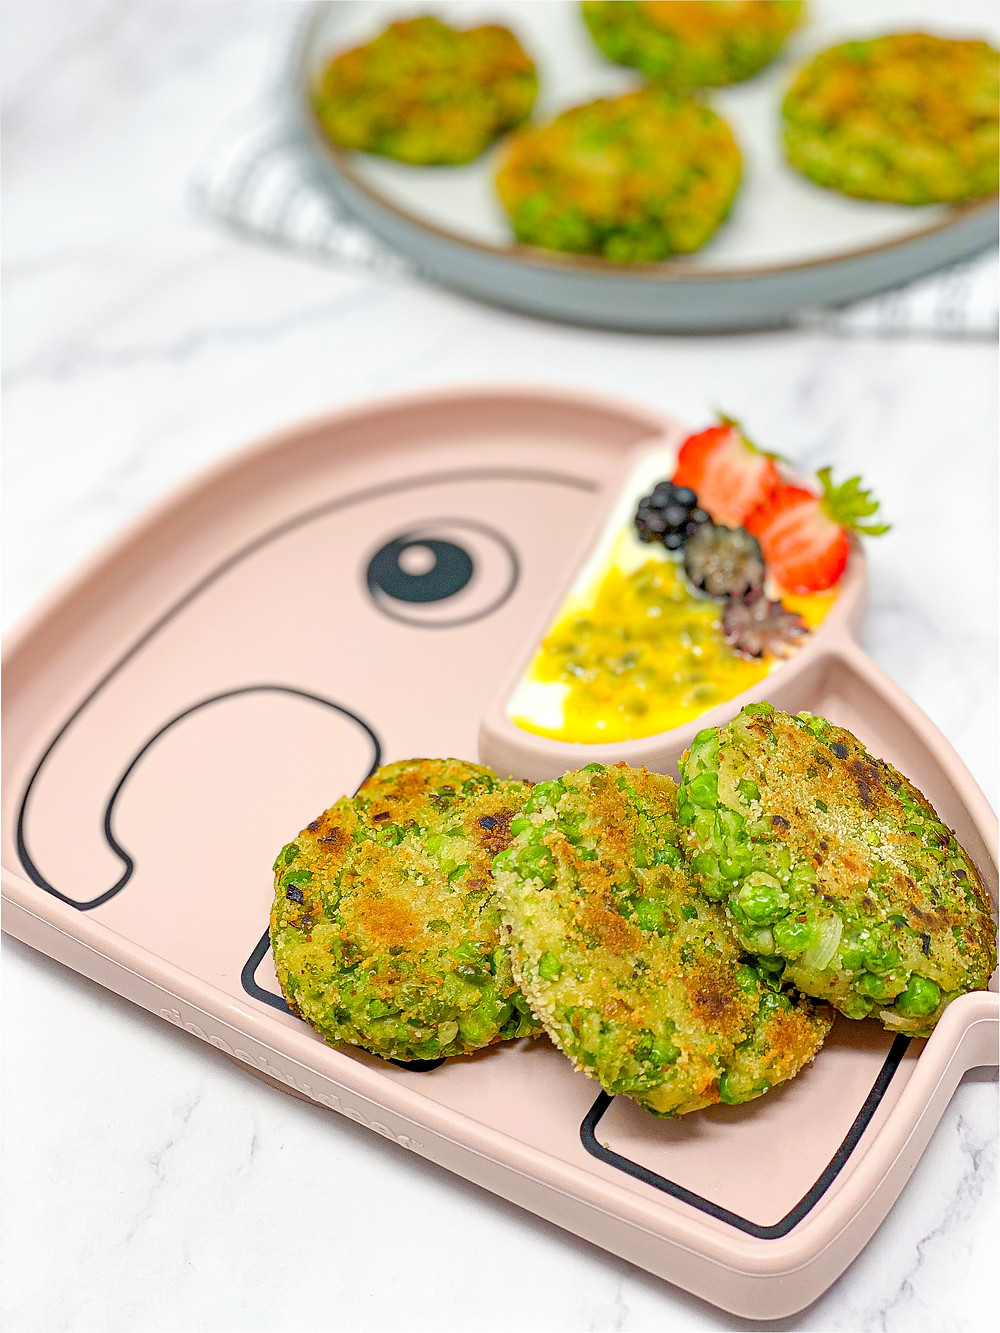 PEA BURGERS for blw